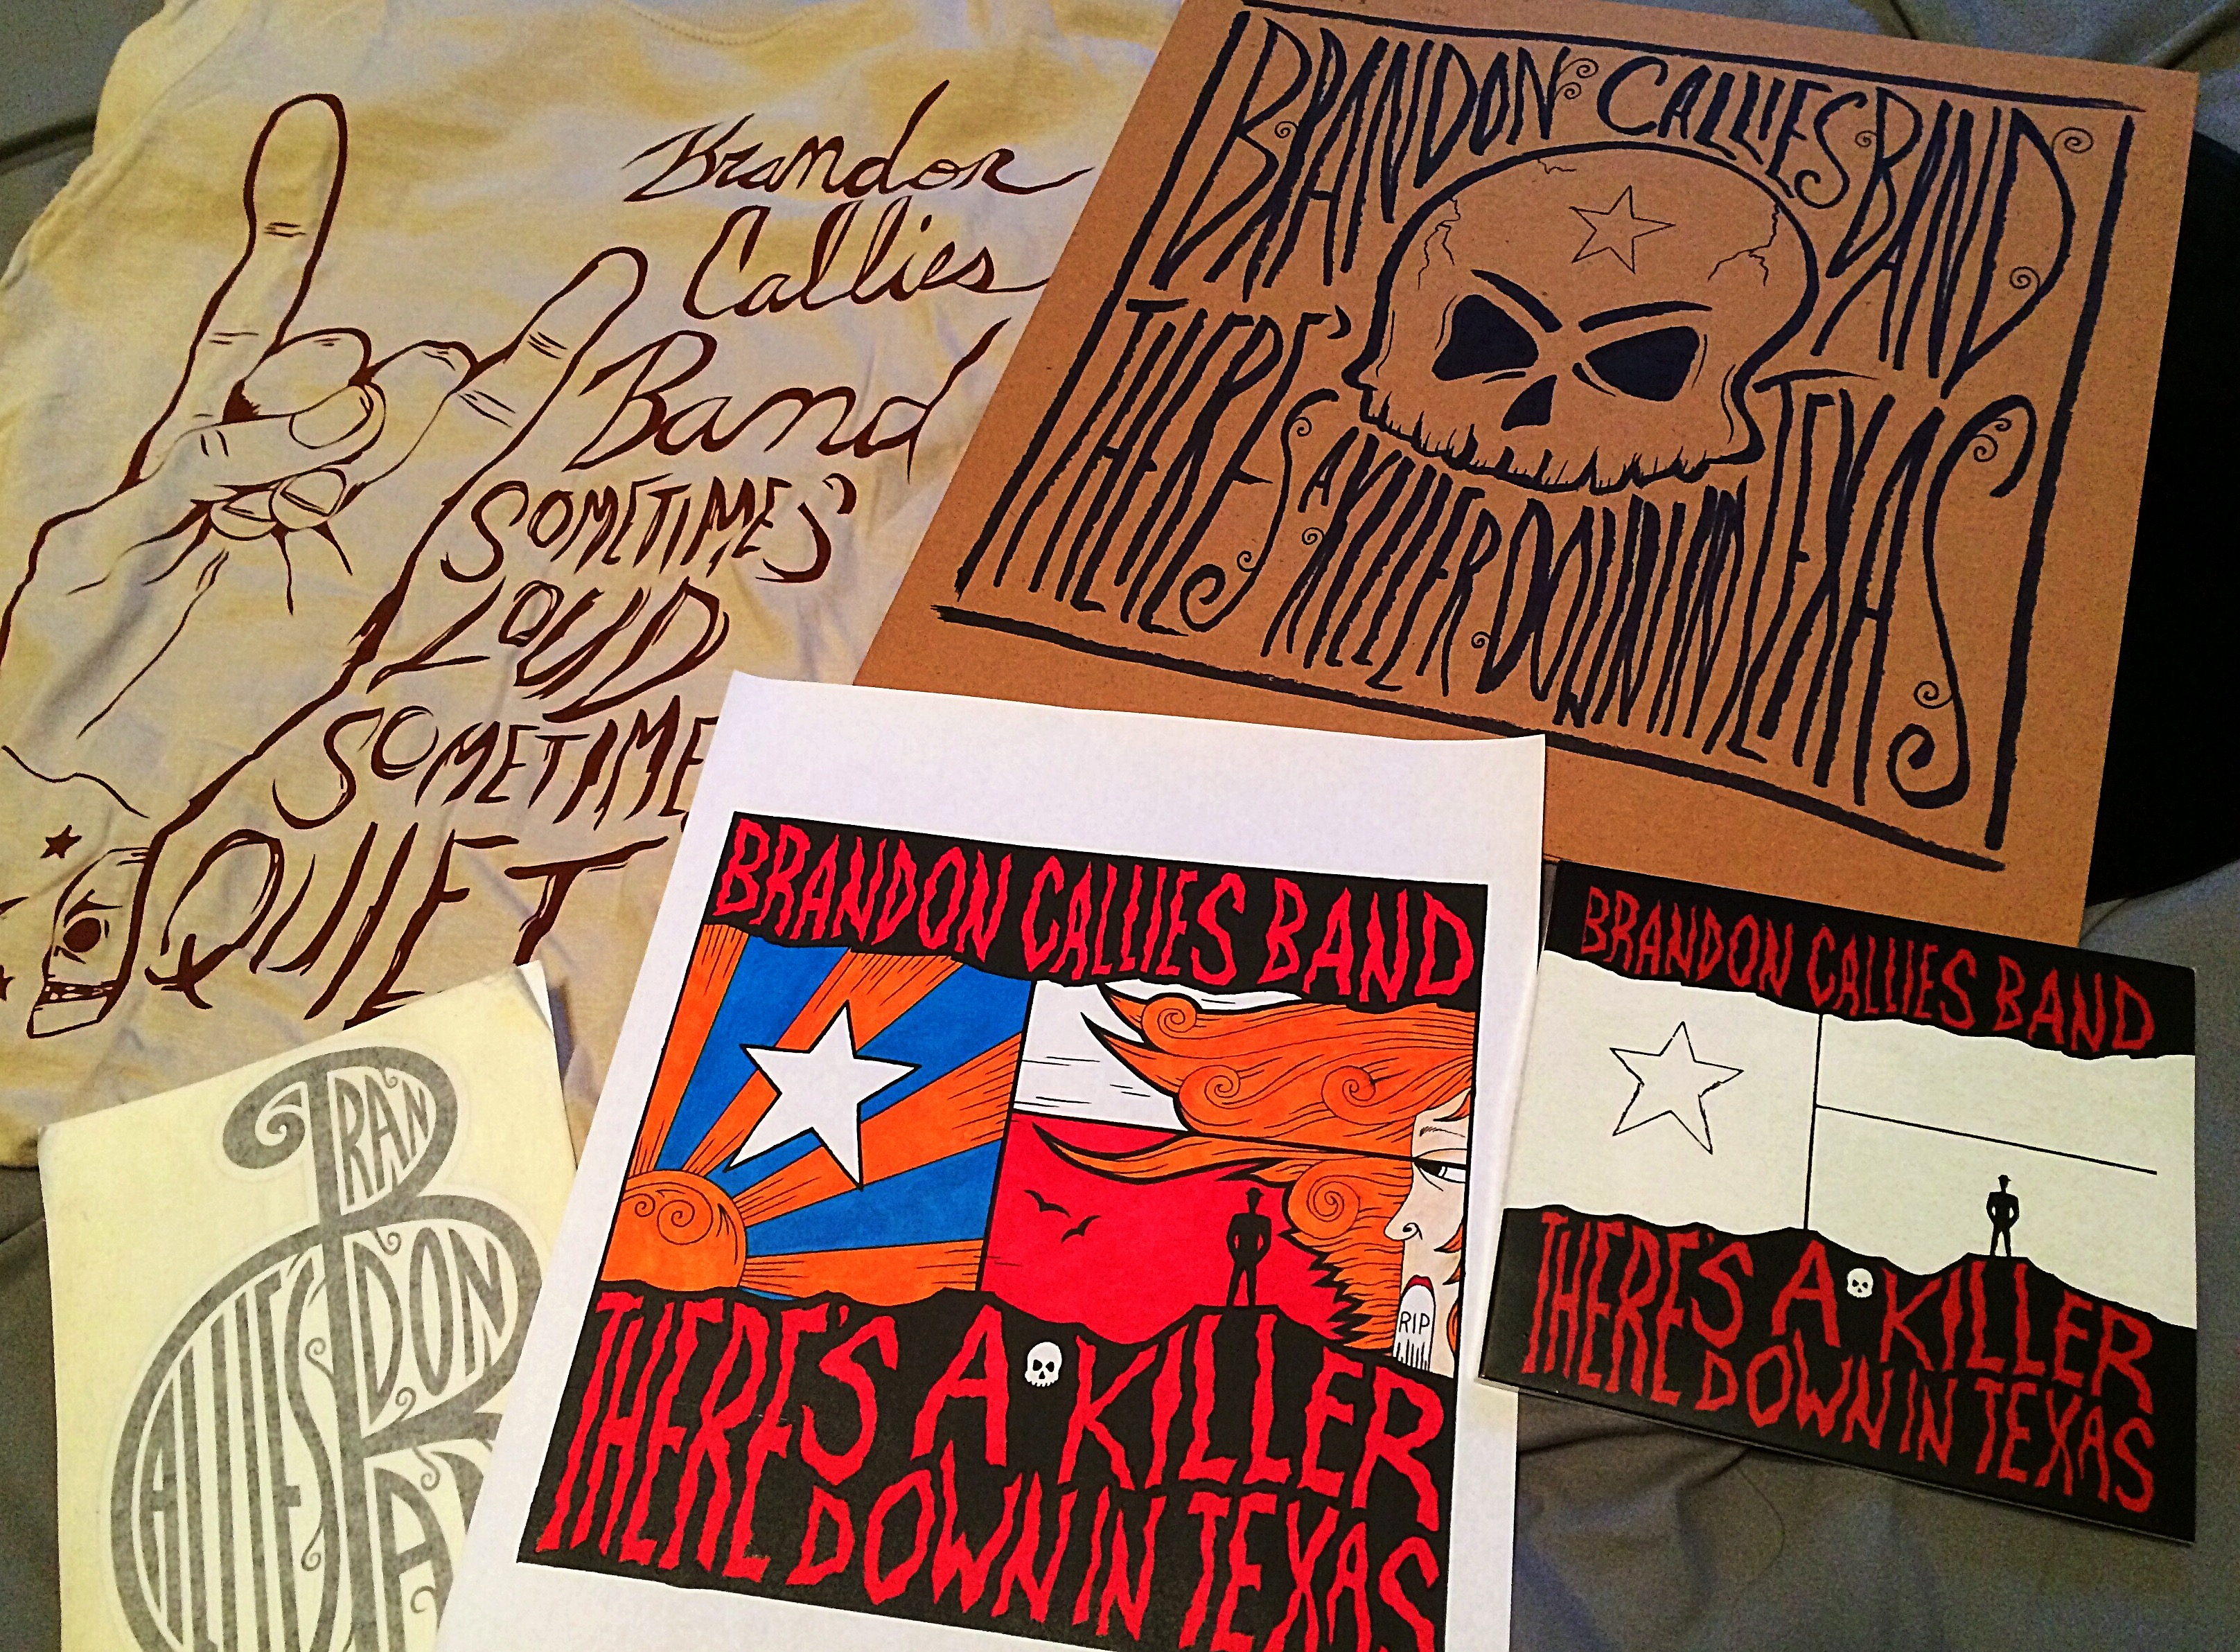 """There's a Killer Down in Texas"" by Brandon Callies Band // Merchandise"